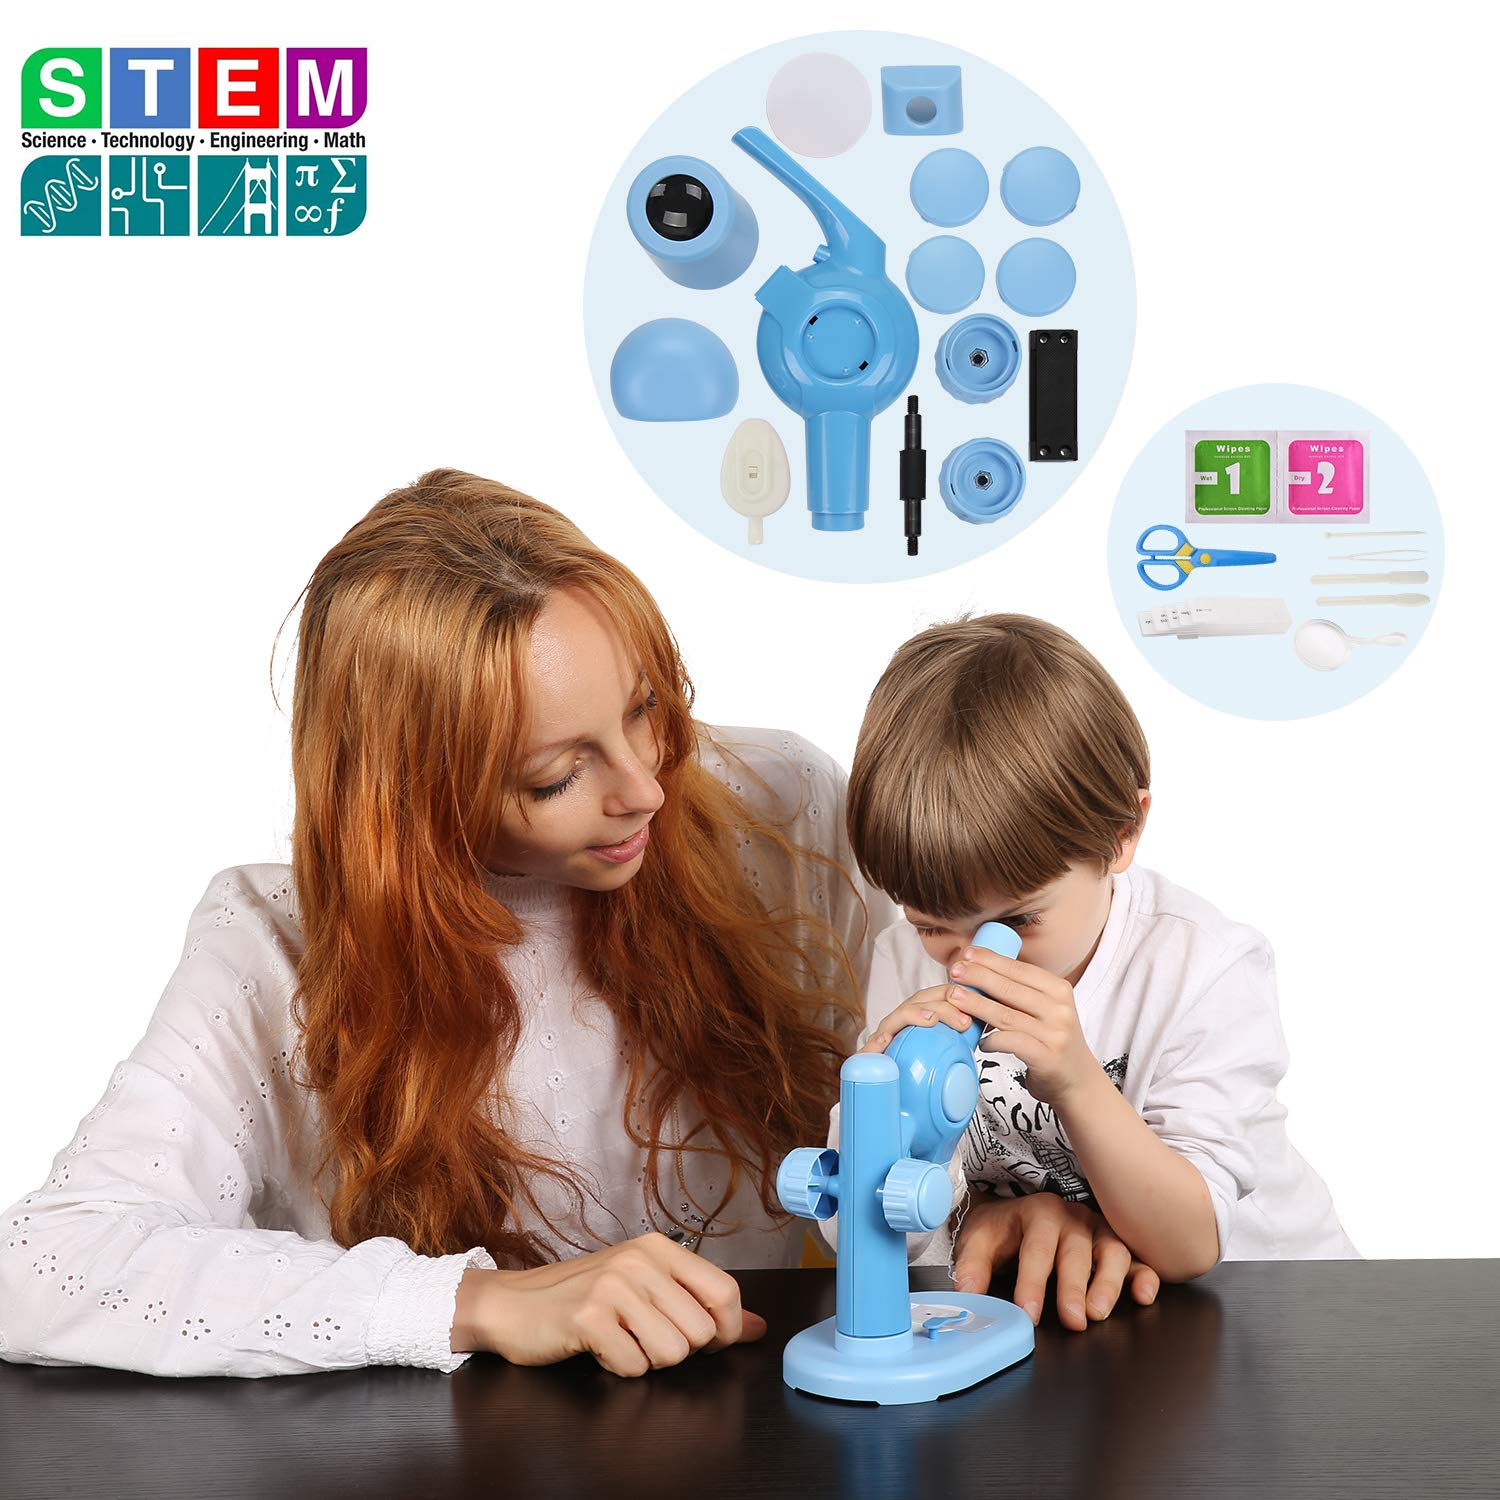 Donzy Take Apart Microscope Toy - Educational DIY STEM Microscope for Preschoolers with Assemable Parts, 15X Science Microscope Take Apart Toy with 5 Prepared Slides for 4-8 Year Old Kids (Blue) by Donzy